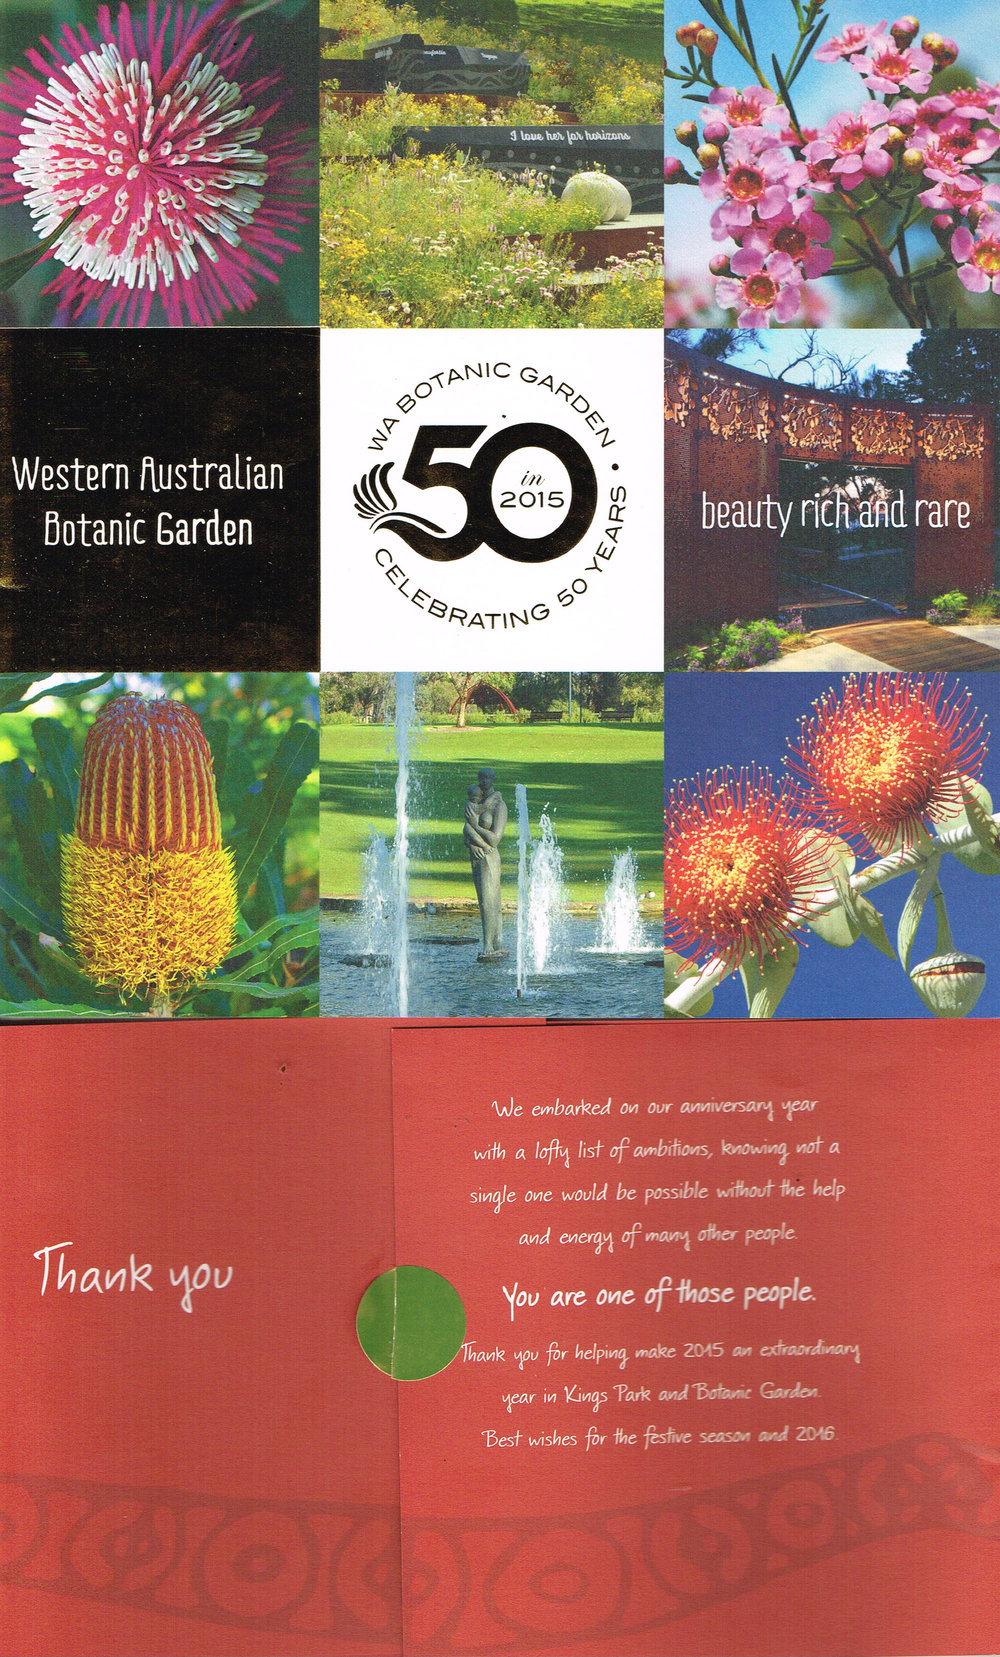 WA Botanic Garden Celebrating 50 Years.jpg